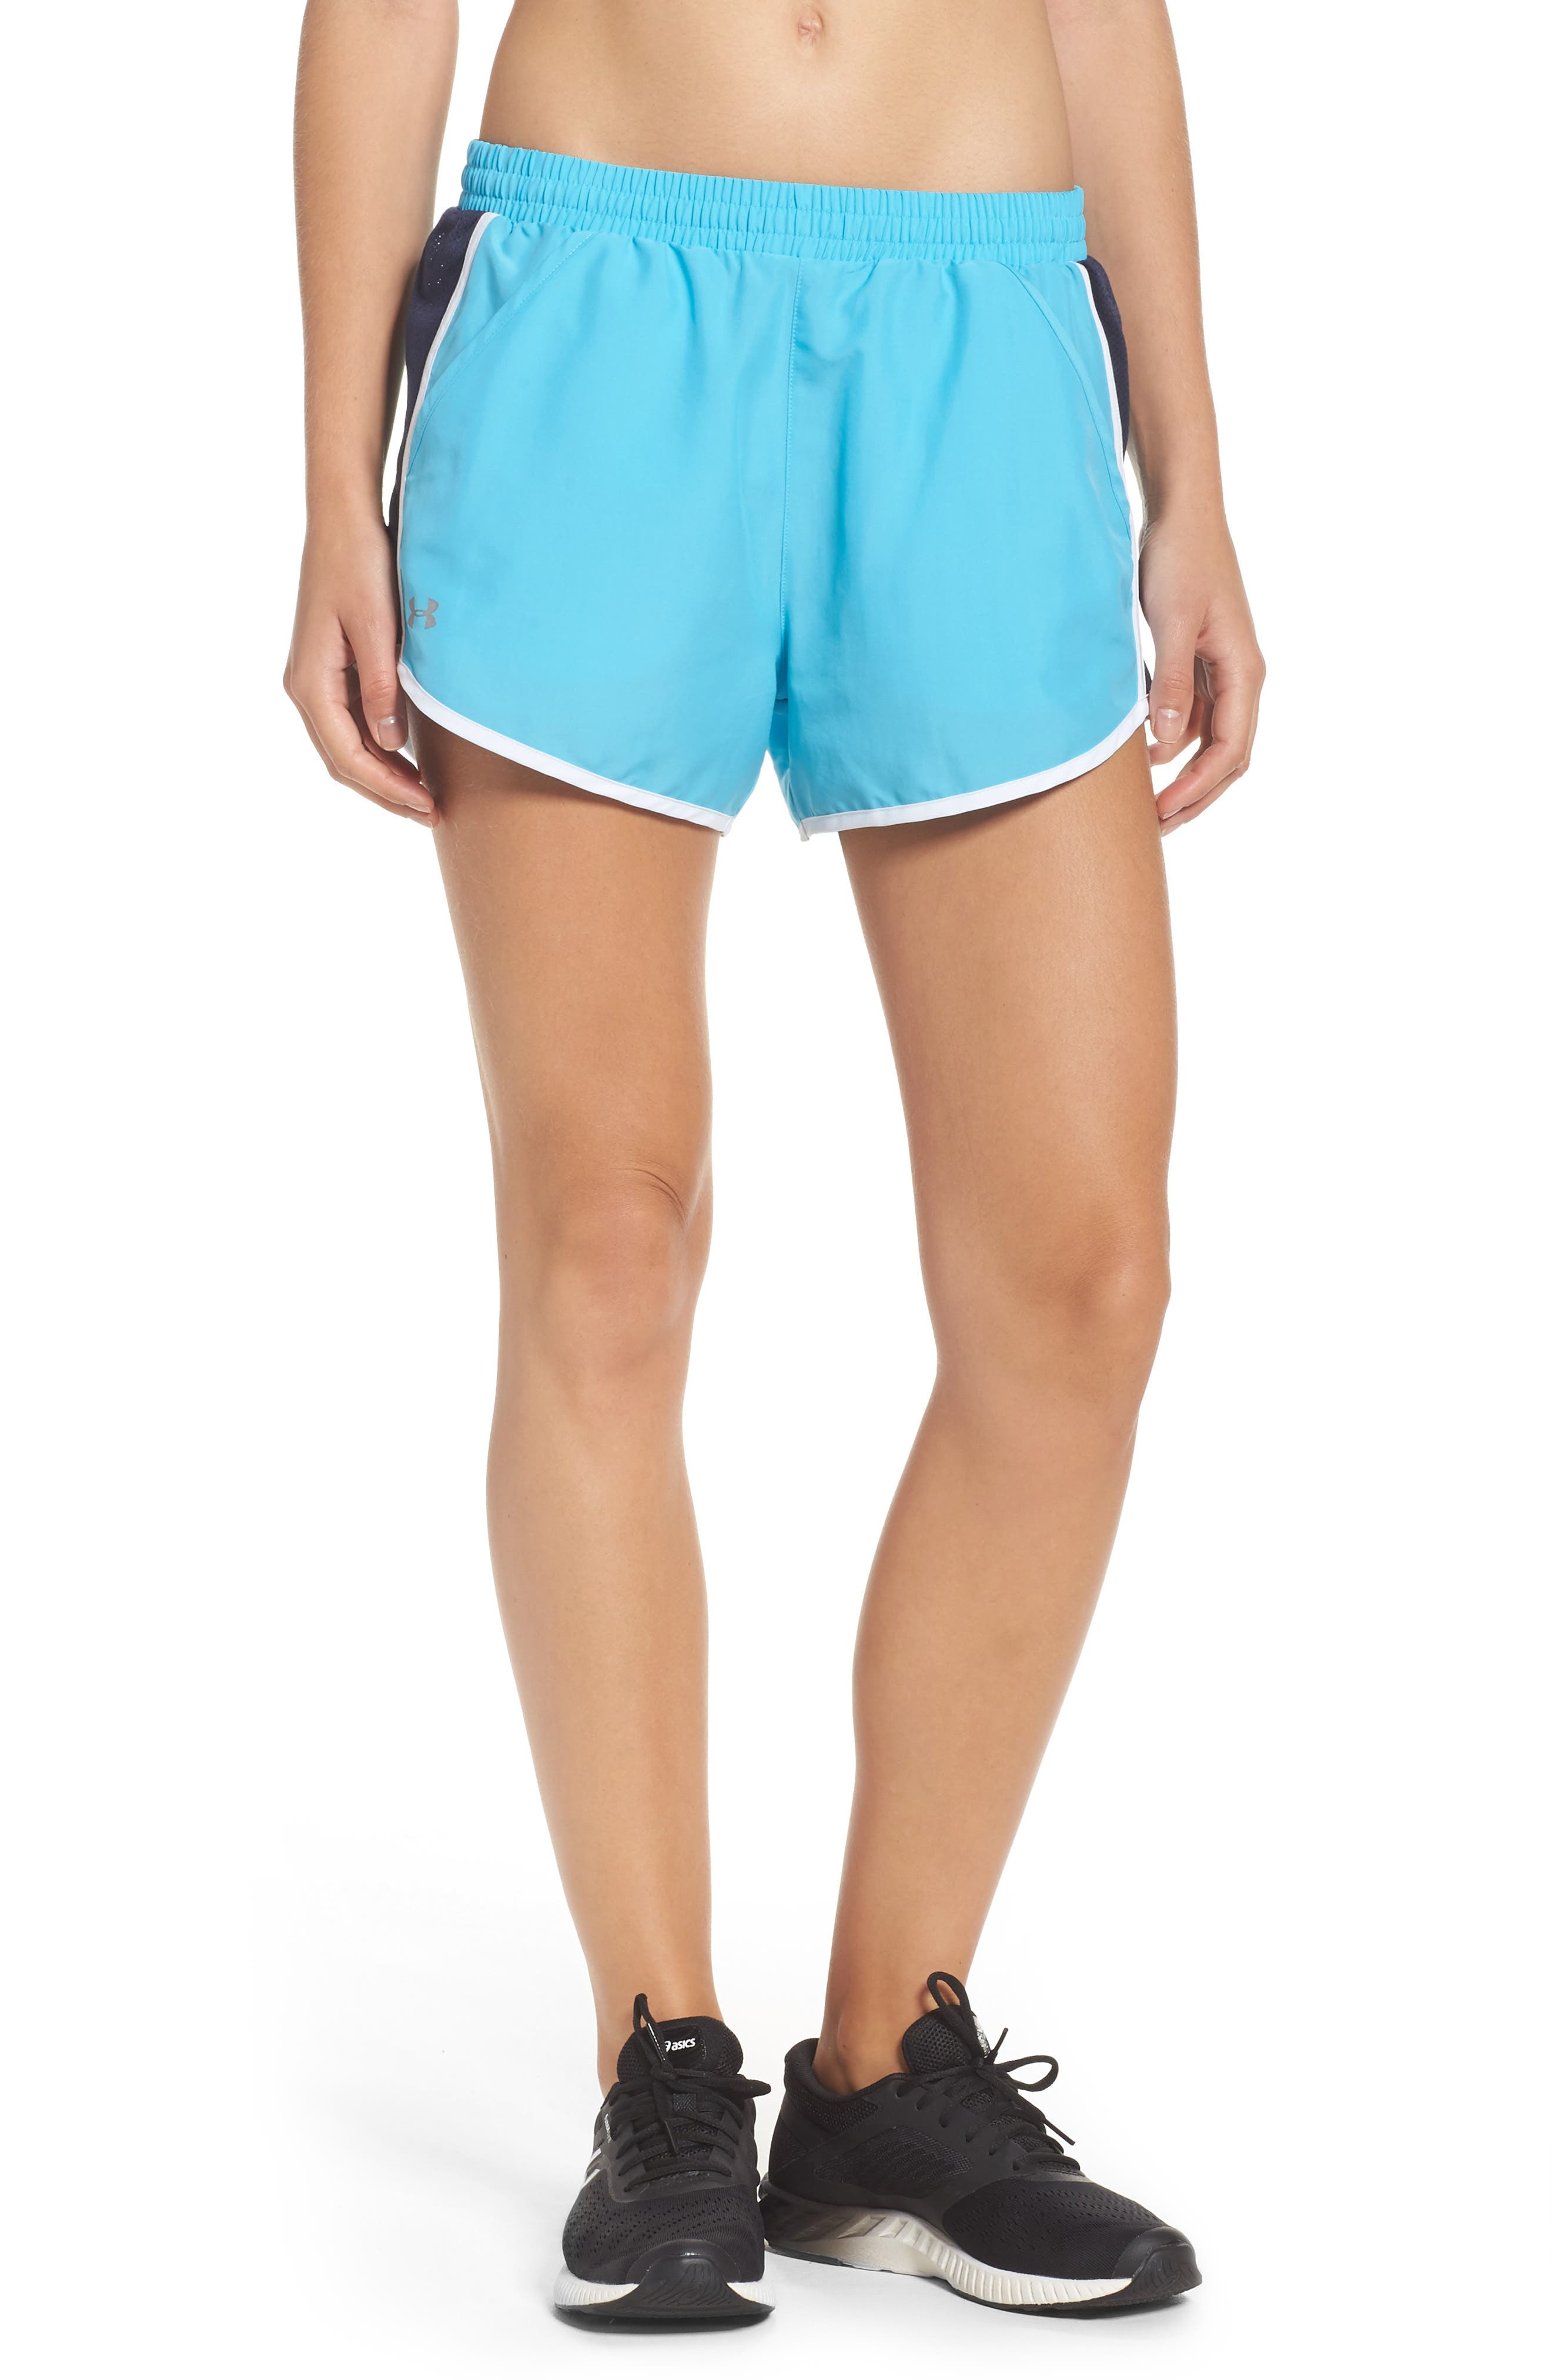 Alternate Image 1 Selected - Under Armour 'Fly By' Running Shorts